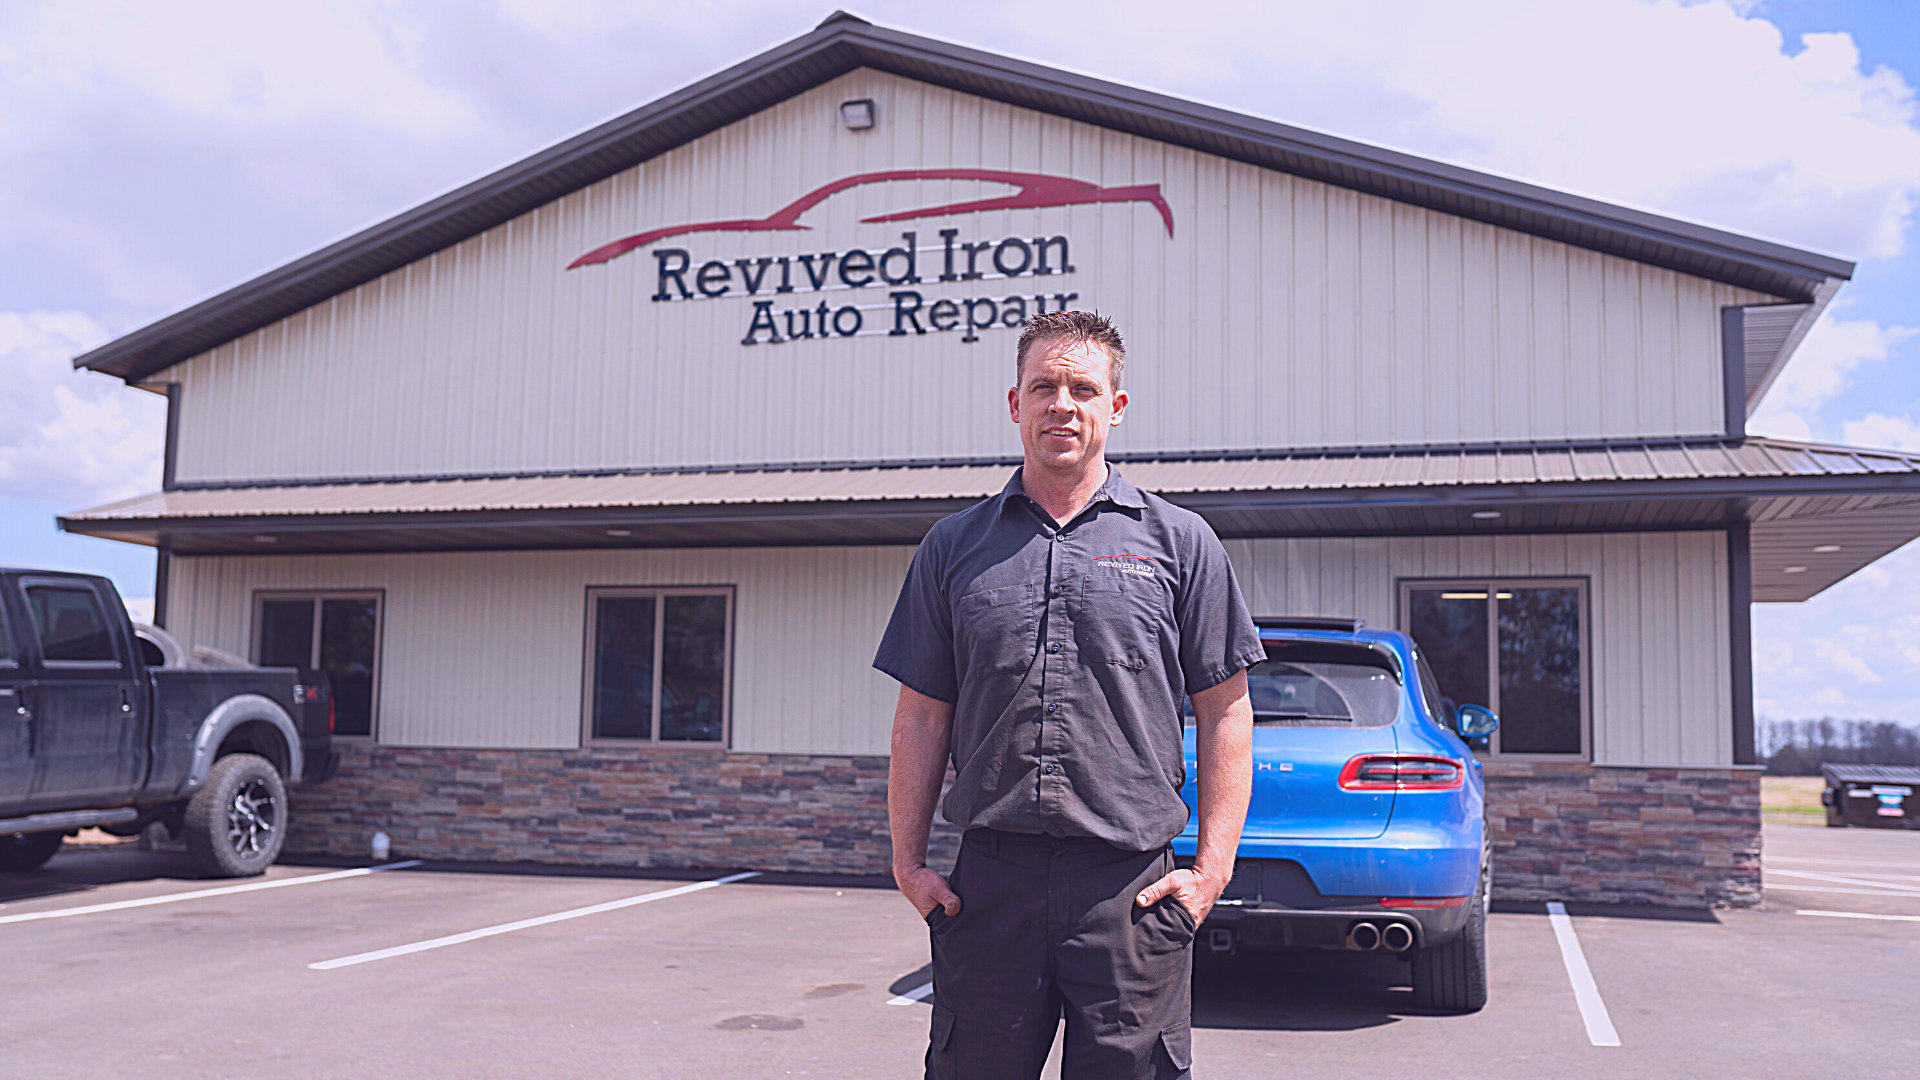 Revived Iron Auto Repair